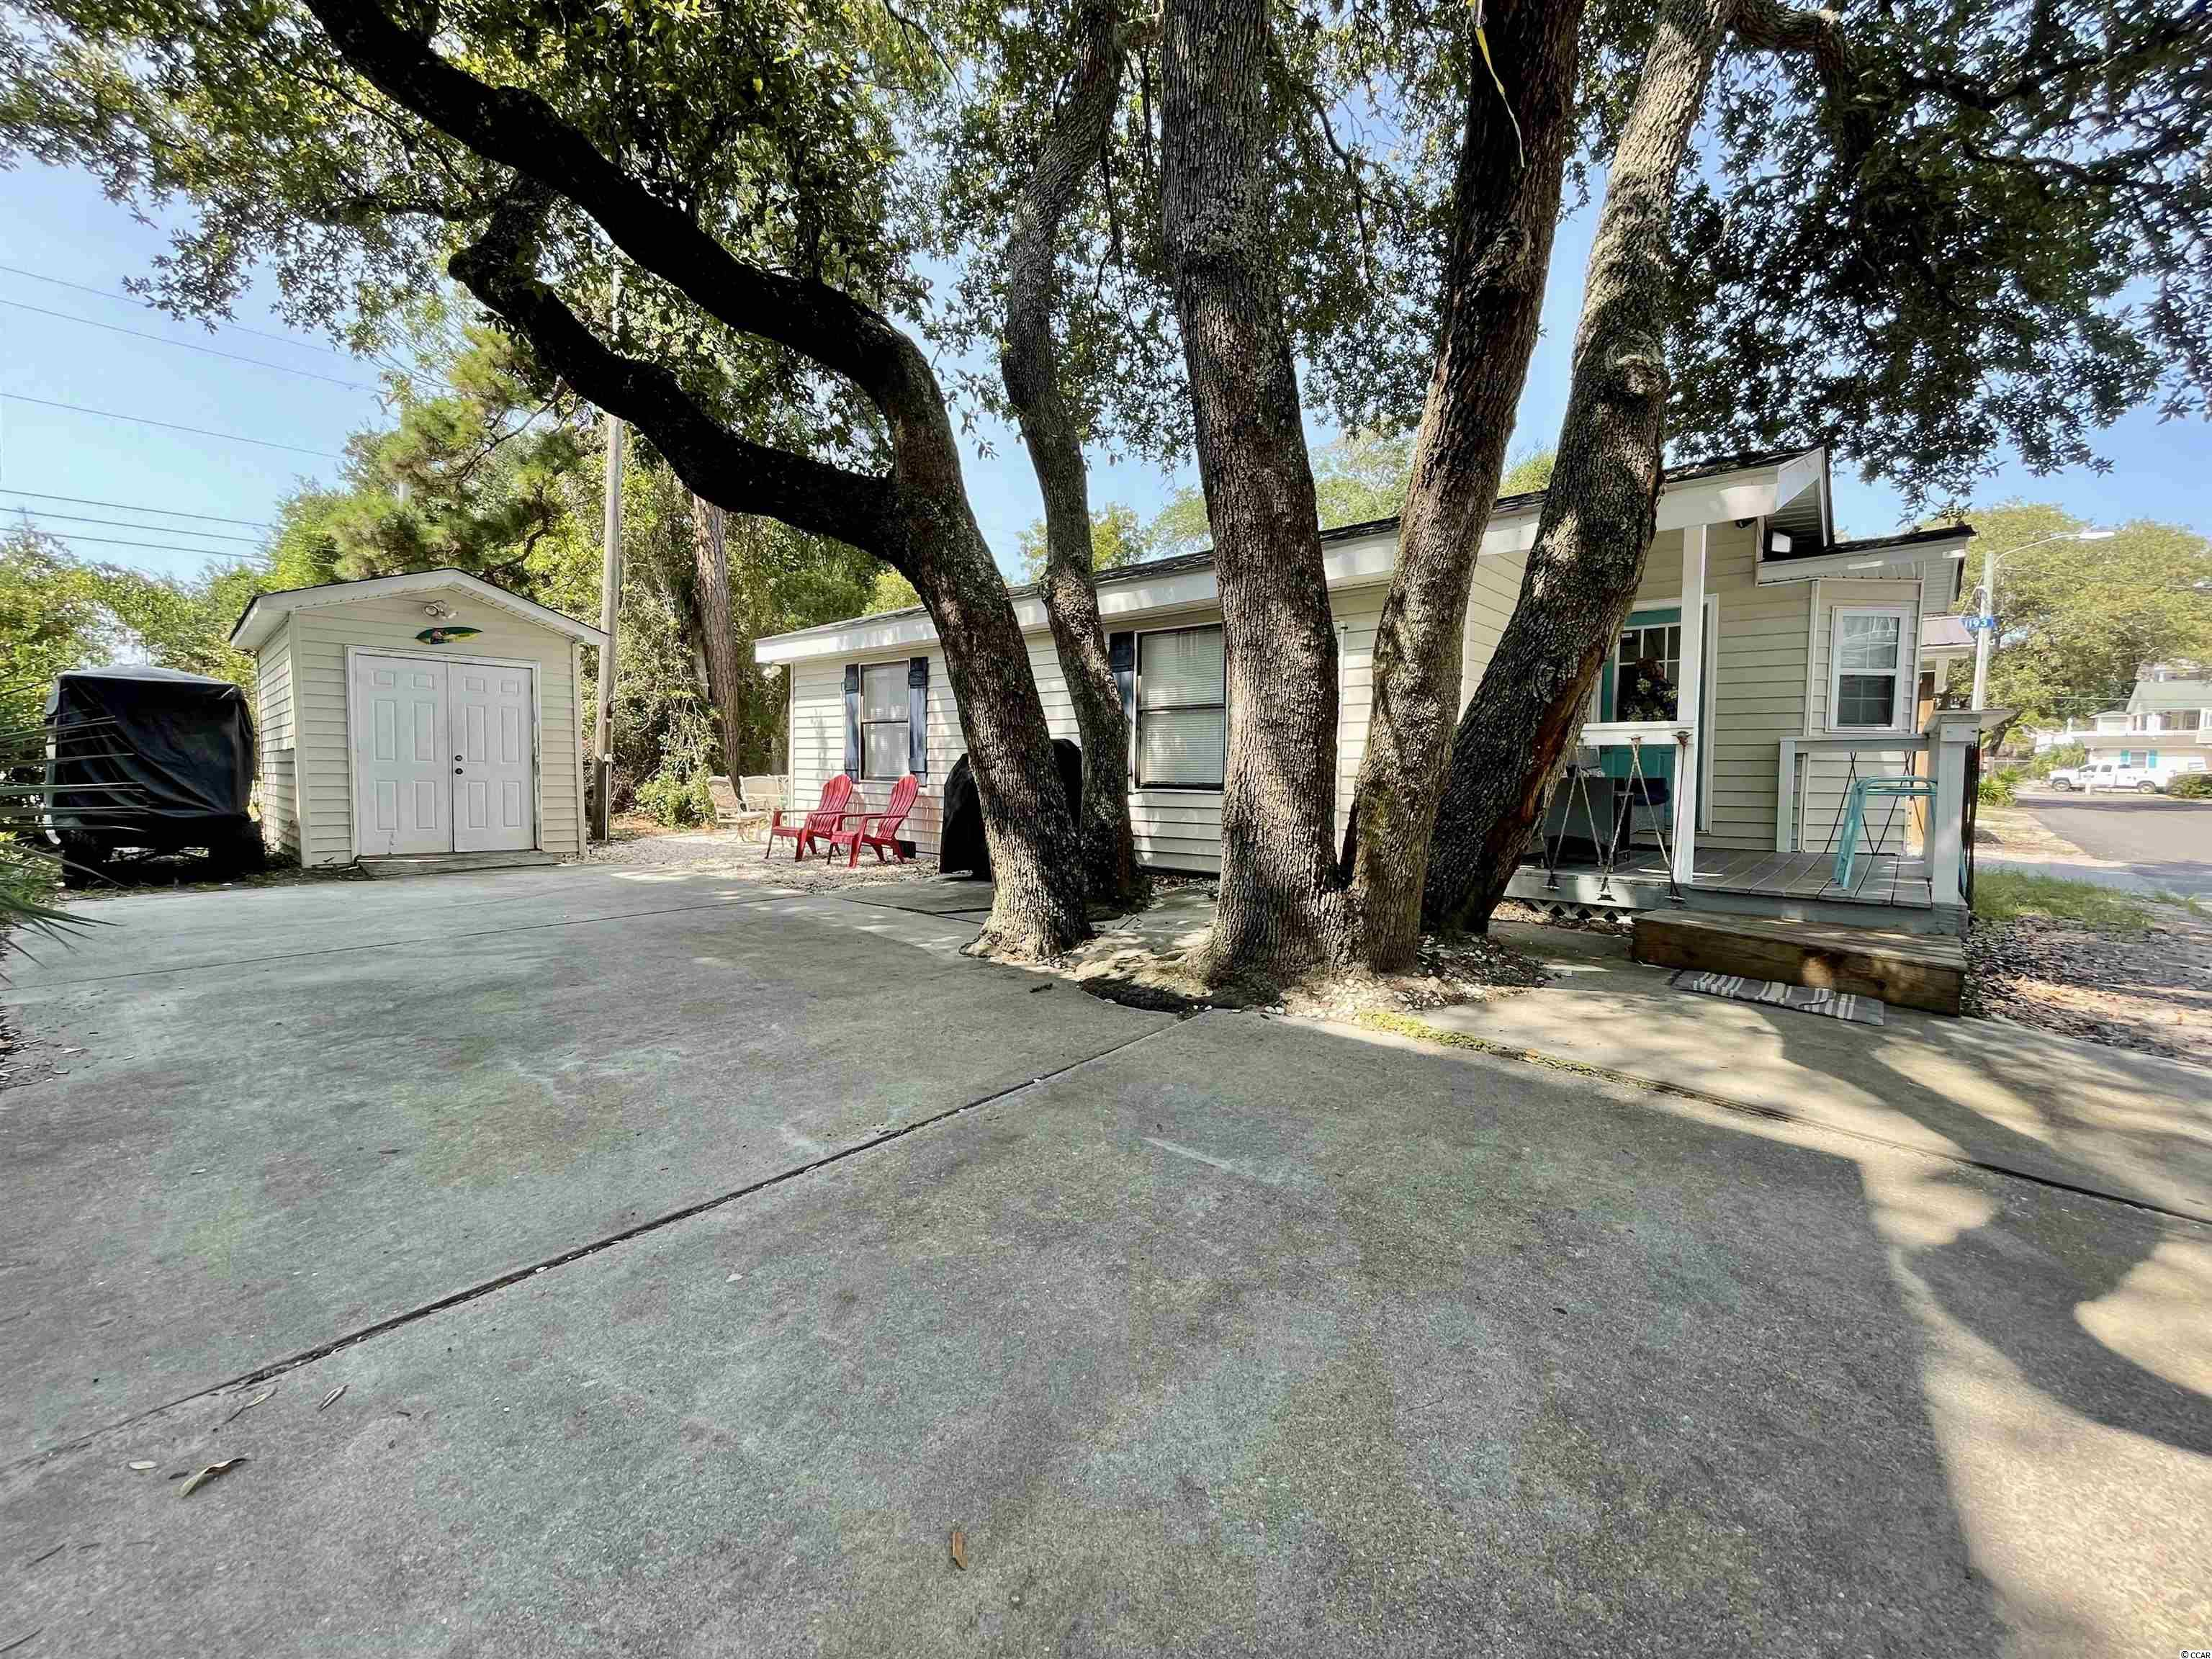 NEW TO MARKET IS A RECENTLY UPDATED 2 BED/2 BATH SWEET BEACH COTTAGE IN OCEAN LAKES JUST STEPS TO THE BEACH ON WIDE SAND DOLLAR DRIVE WITH COVERED PORCH AND PLENTY OF OUTDOOR SPACE! This adorable little beach house is not only in a great location just steps from the blue Atlantic but it also boasts of a great lot with shade from gorgeous, southern live oak trees, a covered porch with Trex decking, lounging and grilling area on the back lawn, outdoor shower, a large paved driveway and a detached garage to store your golf cart and all your beach gear. Entering the home you will love the newly updated kitchen with tile floors, stainless steel appliances and a sweet granite breakfast bar; new LVP flooring in the family room and bedrooms; updated baths with tile flooring; new furnishings and decor with sleeper sofa; flat screen TVs and more.! Home is being sold fully furnished excluding some wall art and the coffee table. New roof in 2020 and 3 Daikin mini-split, ductless HVAC units. Great Investment! Must honor 2021 rentals.   There is NO HOA in Ocean Lakes. Home is located on leased land, which is payed in semiannual installments with half due in January and half in July.   Amenities abound in Ocean Lakes' gated community and include almost a mile of pristine white sand beach, 24 hour security, trash pick-up, free cable TV, indoor/outdoor swimming pools, water park/slides, lazy river, splash zone, 2 full size basketball courts, miniature golf, fire pit, corn hole, shuffle board, horseshoes, ping-pong, Sandy's Down-under skatepark, recreation building, arcade, general store, golf cart rentals, Sandys Meet & Eat restaurant and more!